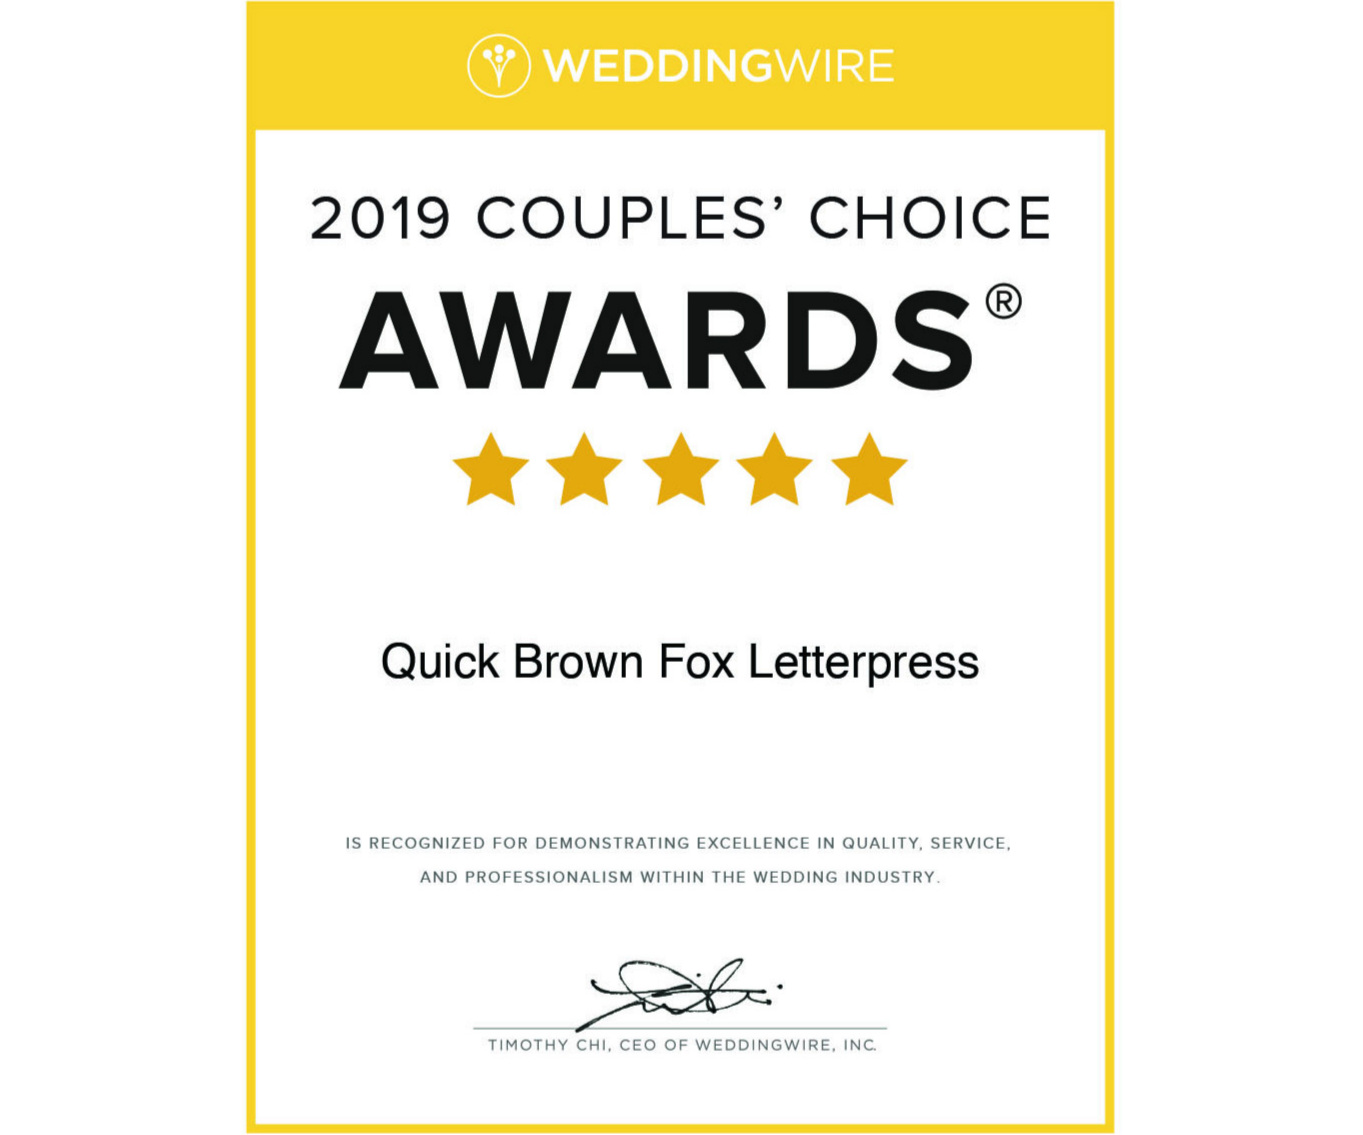 2019 Wedding wire couples' choice award - For reviews, please visit me at my Wedding Wire site: https://www.weddingwire.com/biz/quick-brown-fox-letterpress-brooklyn/e8aa8e4e4f6d63b7.html